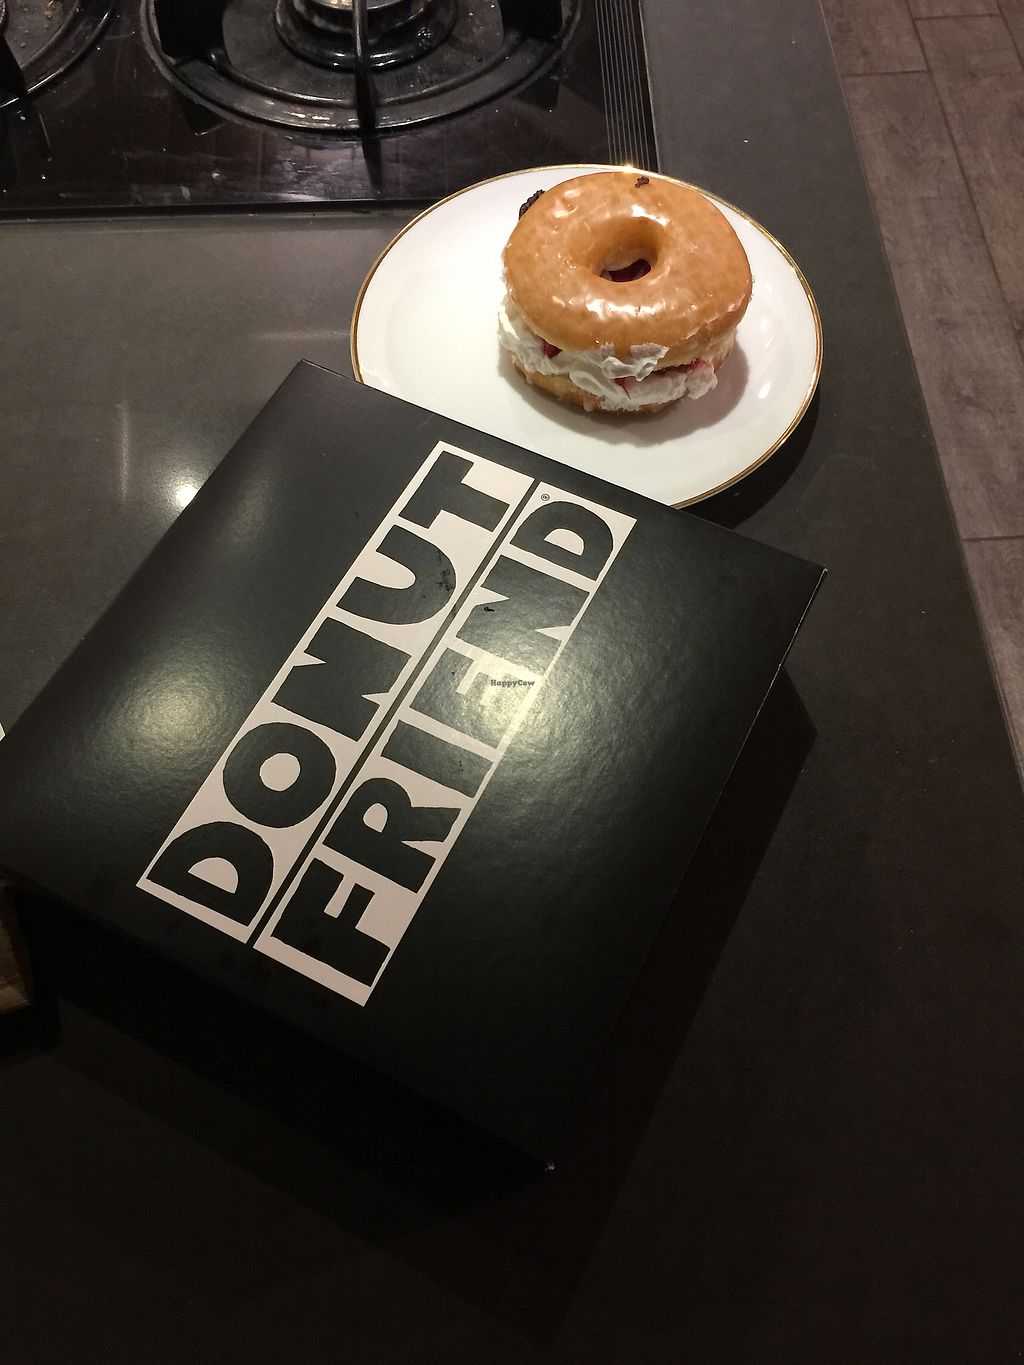 """Photo of Donut Friend  by <a href=""""/members/profile/R12345"""">R12345</a> <br/>To-go box of donuts! <br/> January 27, 2018  - <a href='/contact/abuse/image/43258/351309'>Report</a>"""